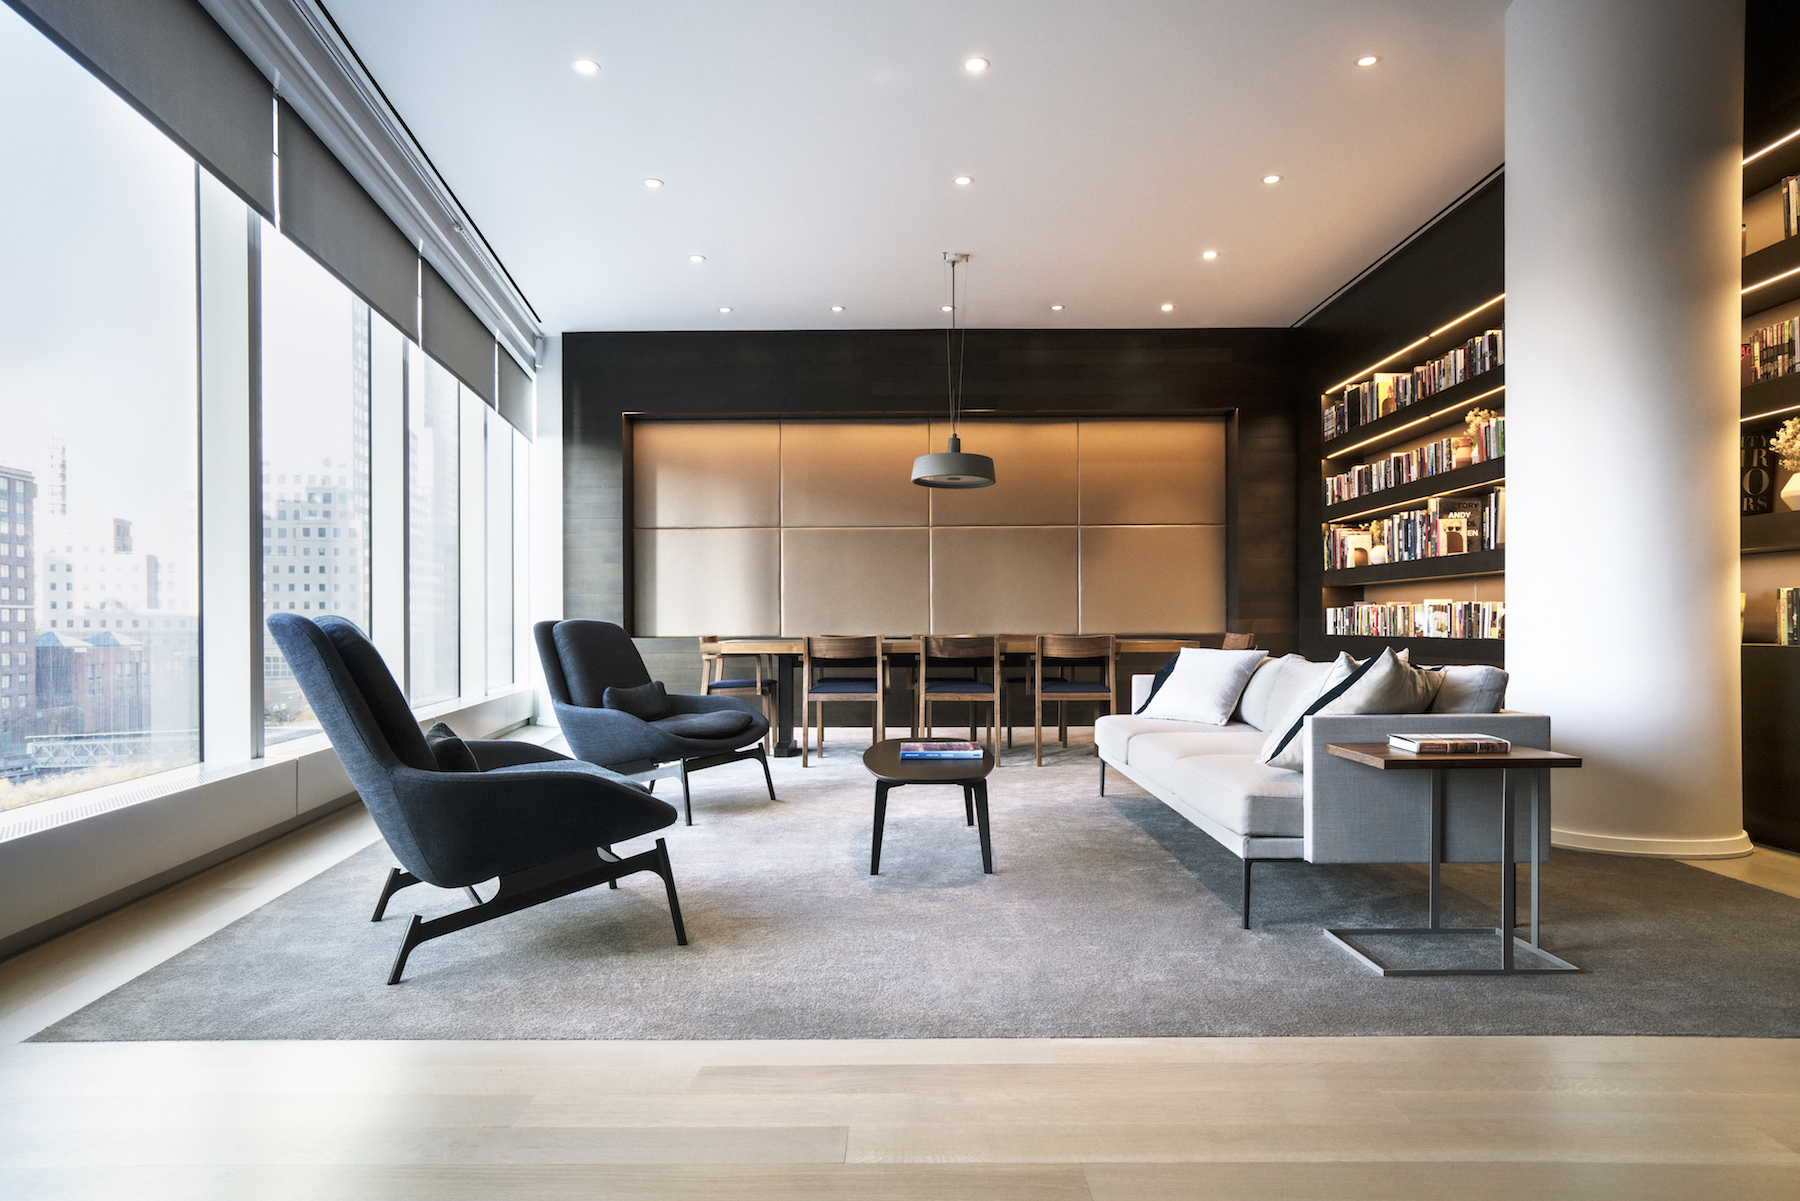 The Helmut Jahn-Designed 50 West Street In The Financial District Reveals Its Over-The-Top Amenities